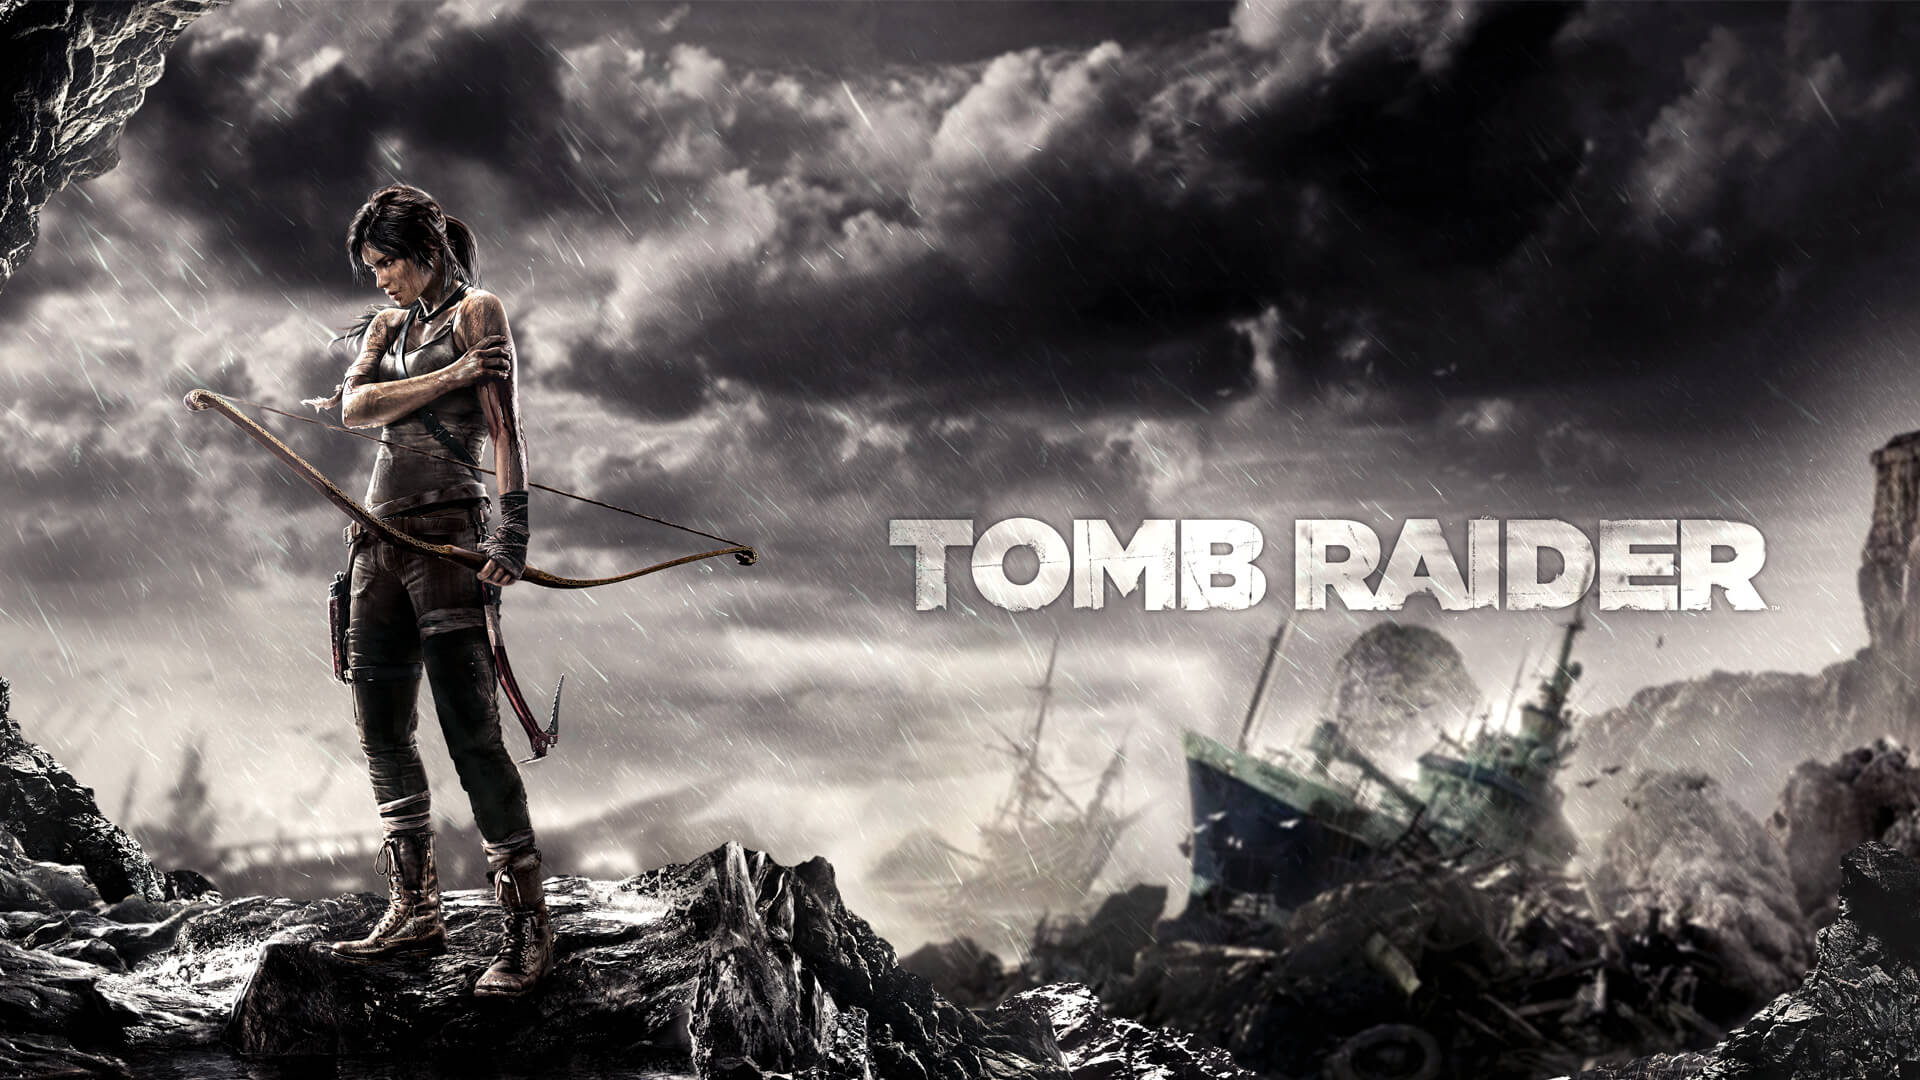 Tomb Raider 2013 Cheats And Trainers Video Games Wikis Cheats